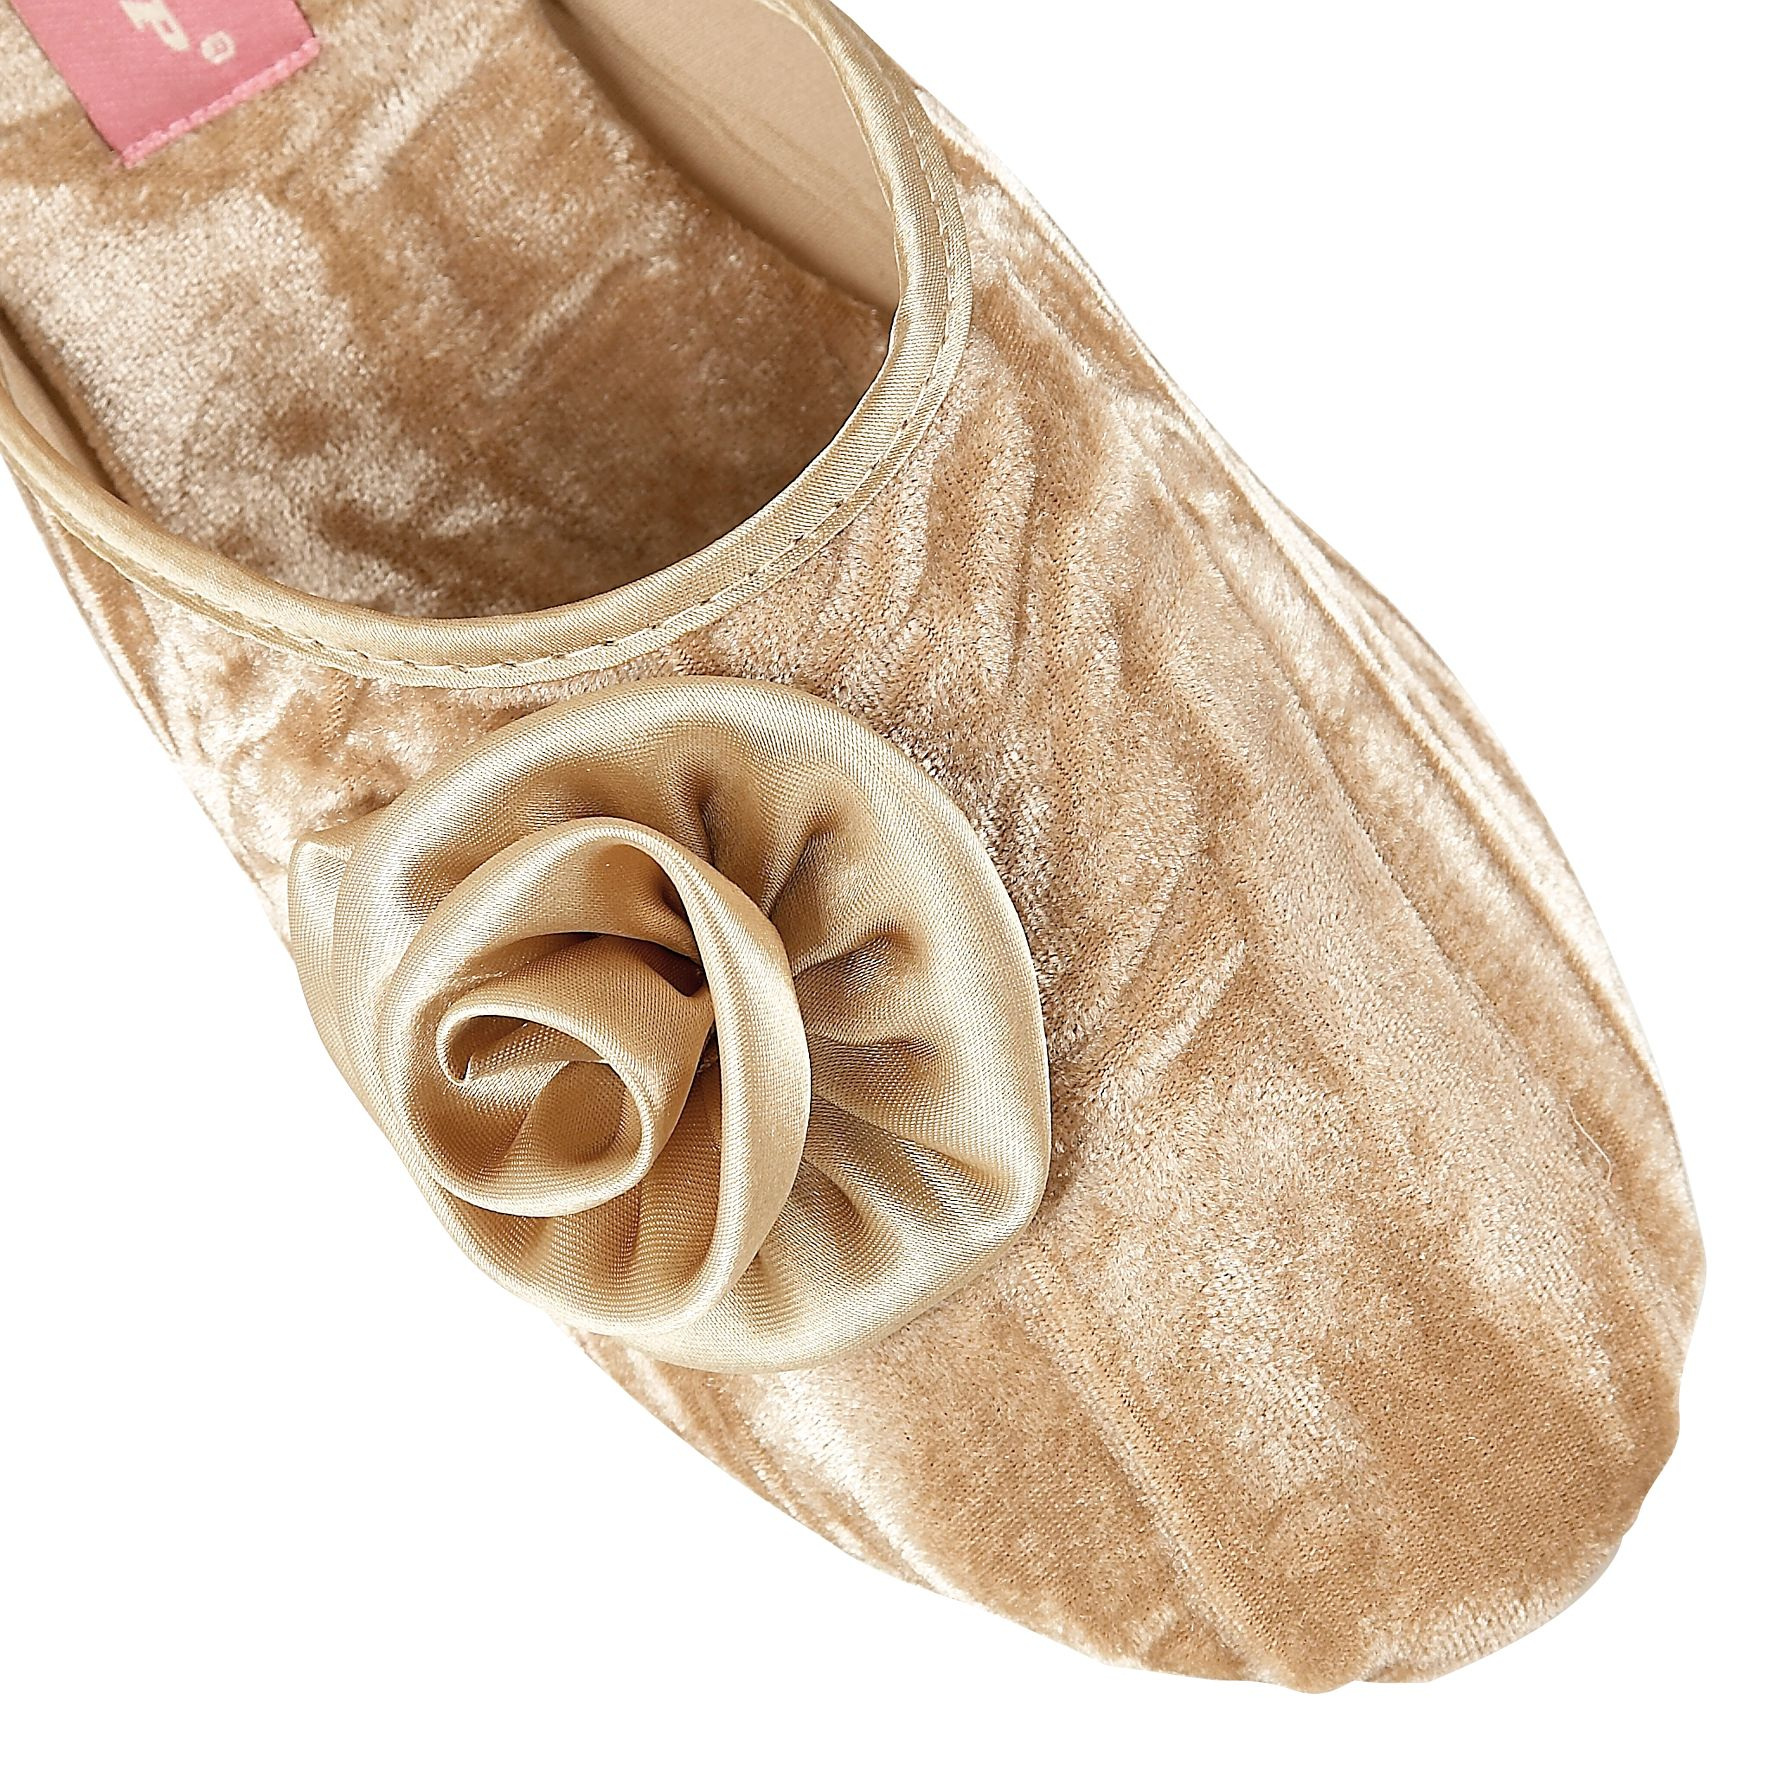 Paul Smith Floral Shoes Ladies Slipers